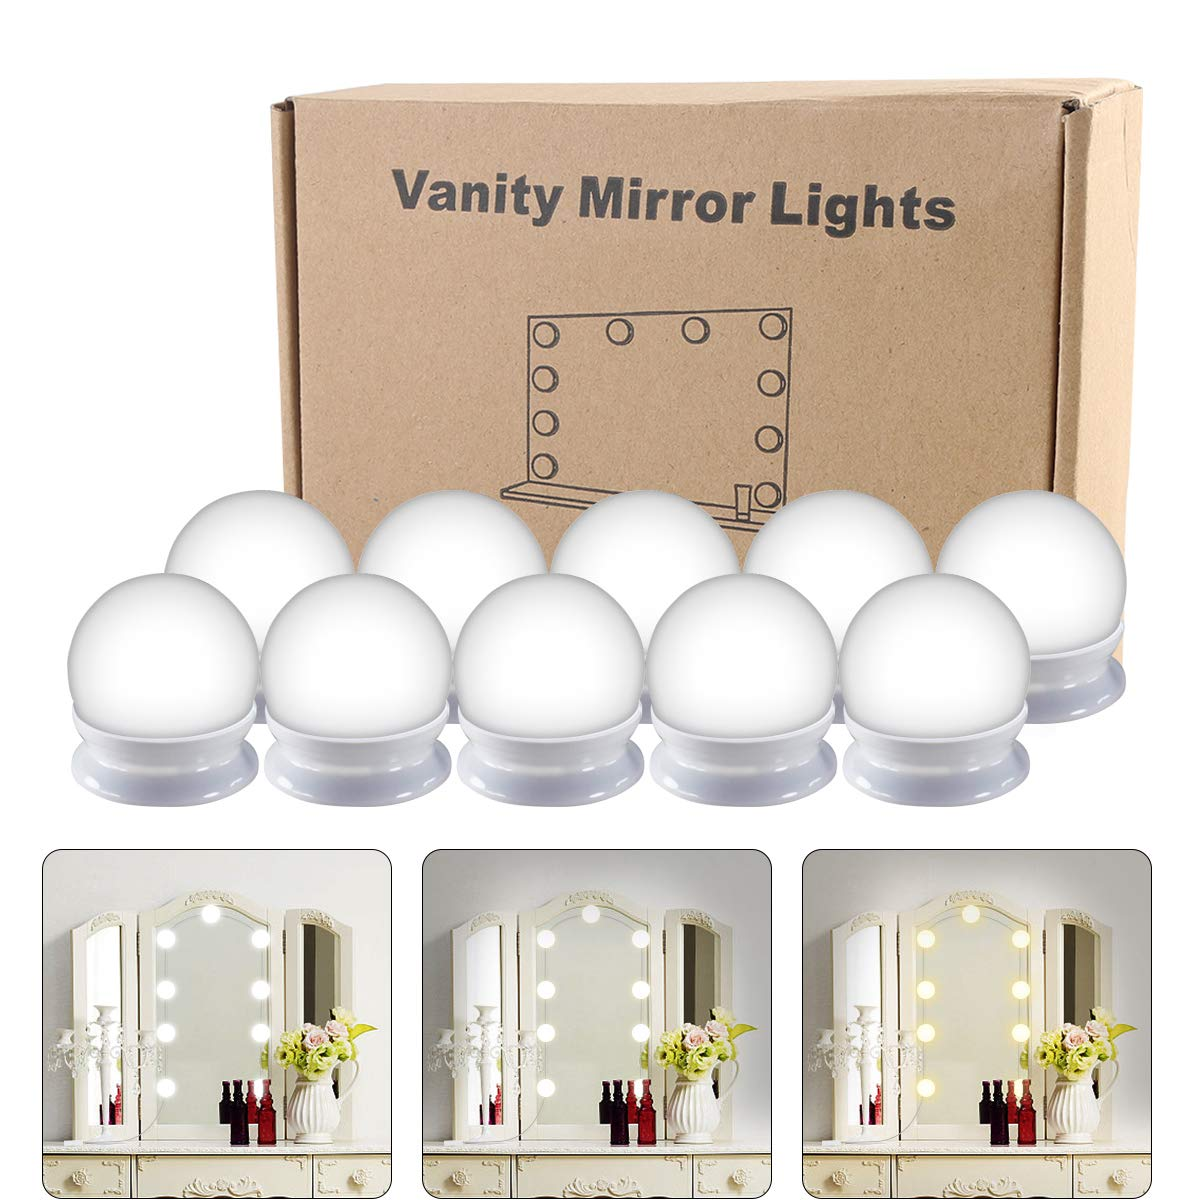 Smart Dimmer Hollywood Style LED Vanity Mirror Lights Kit Vanity Lights Makeup Lighting Fixture Strip with 10 Dimmable Light Bulbs USB Adapter for Makeup Vanity Table Set in Dressing Room